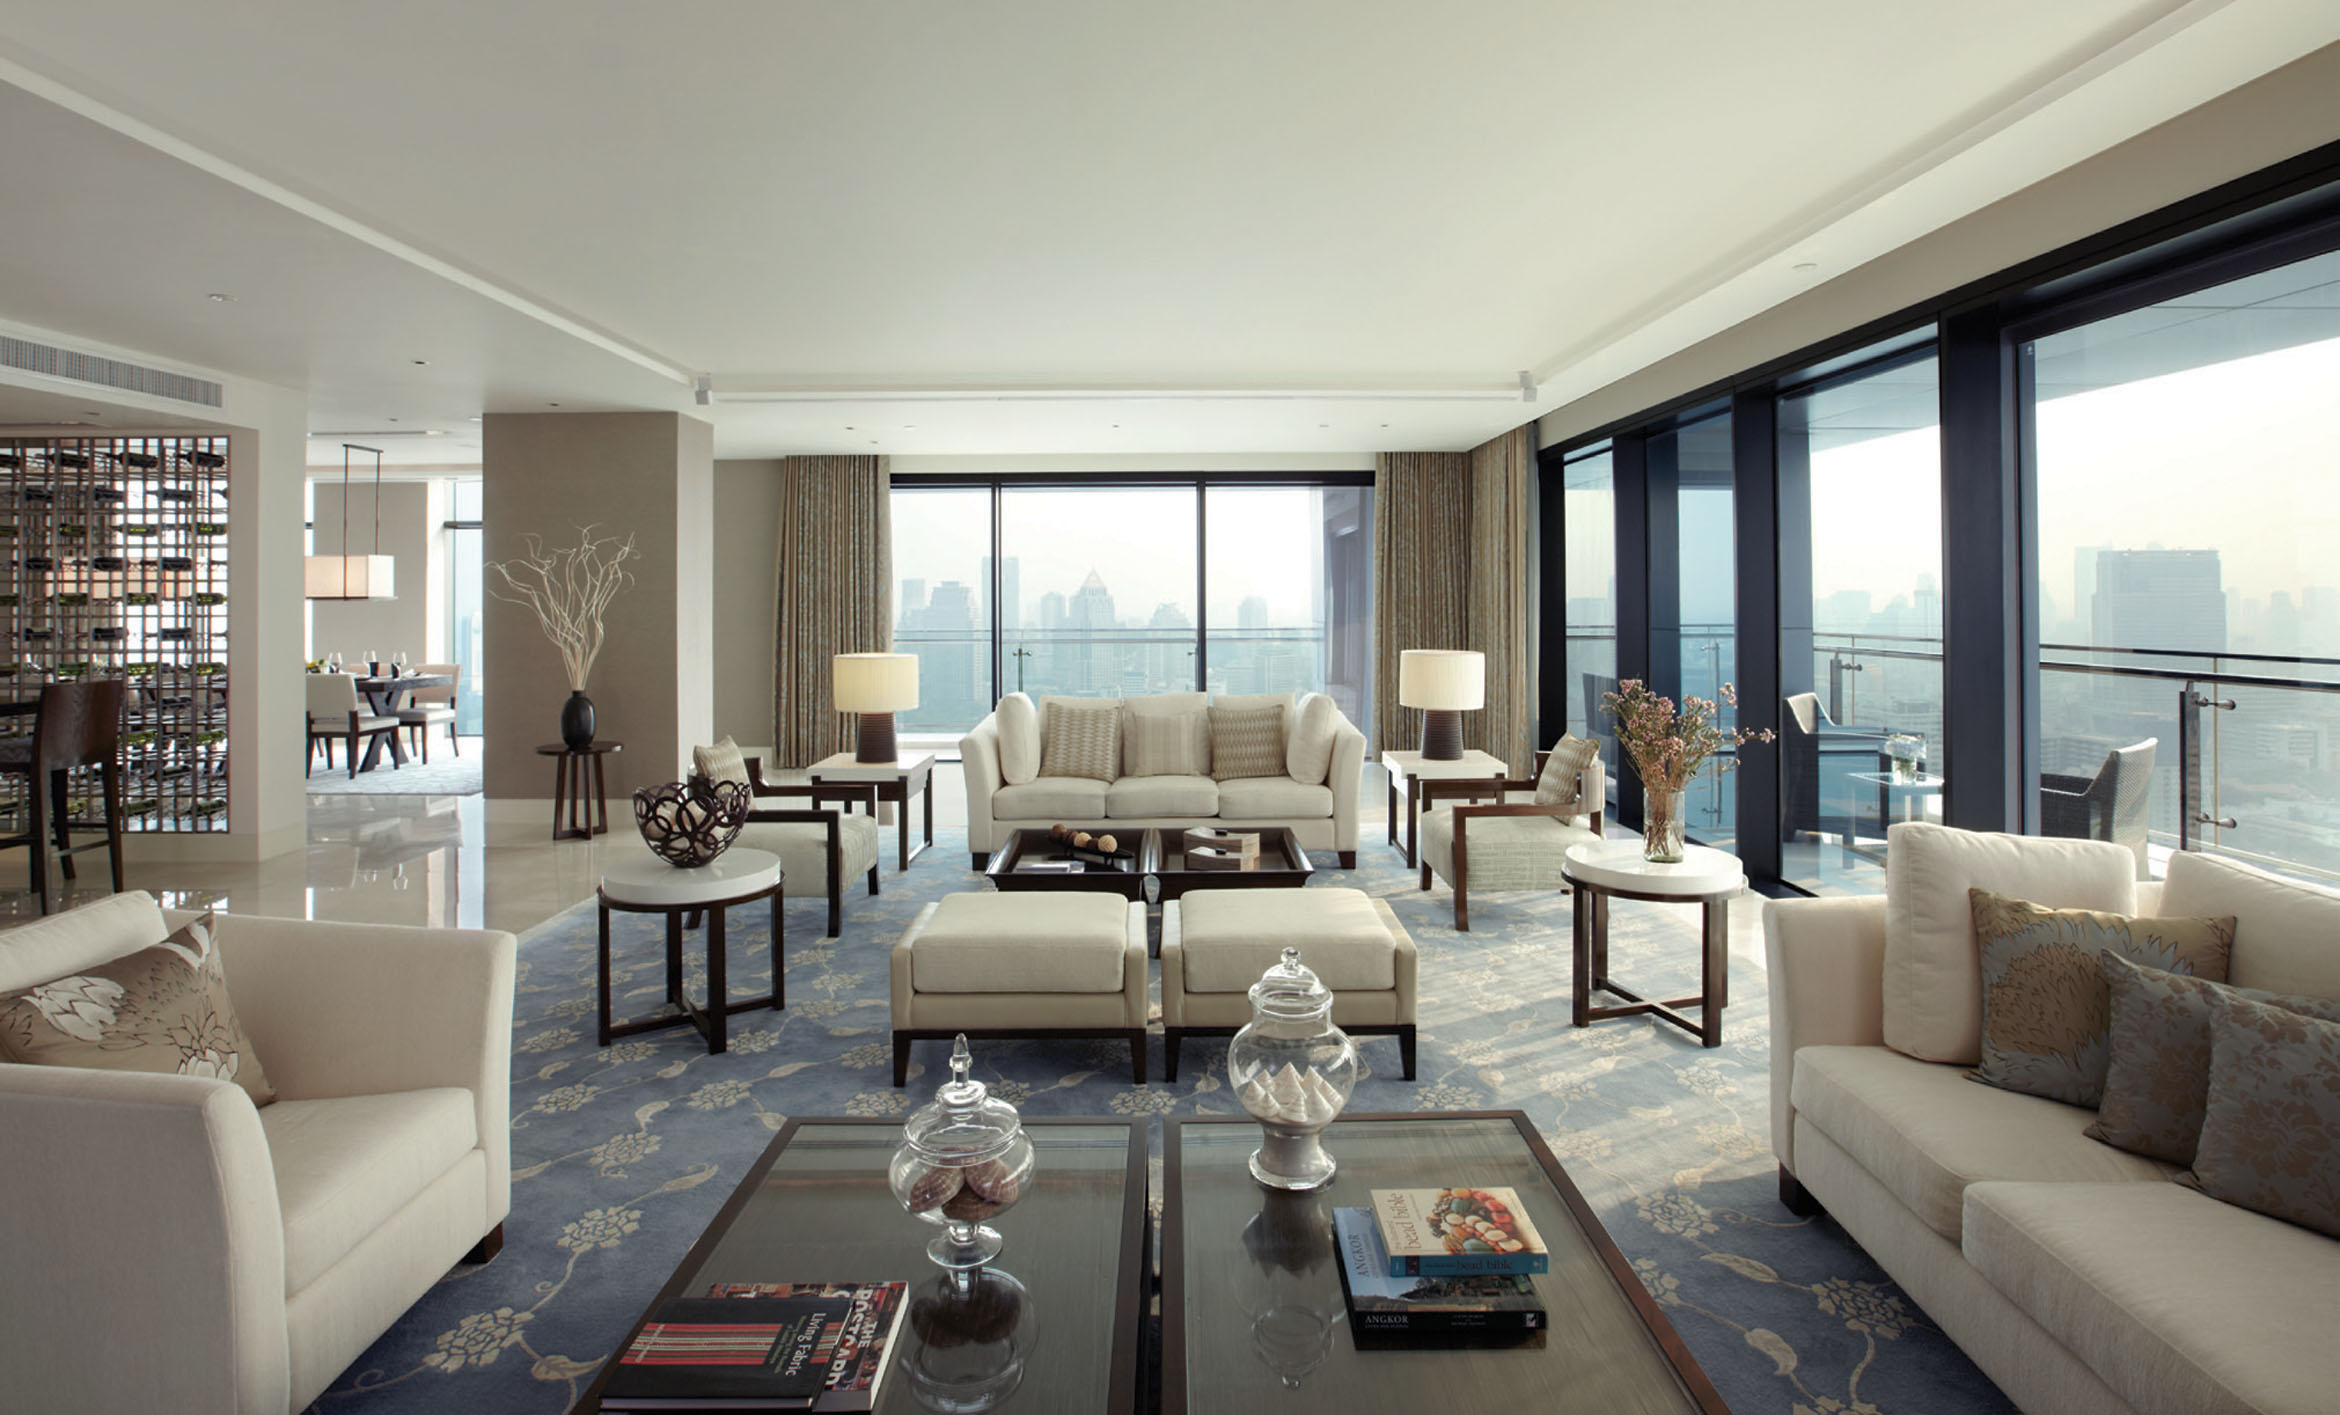 Apartment Interior at St Regis Thailand